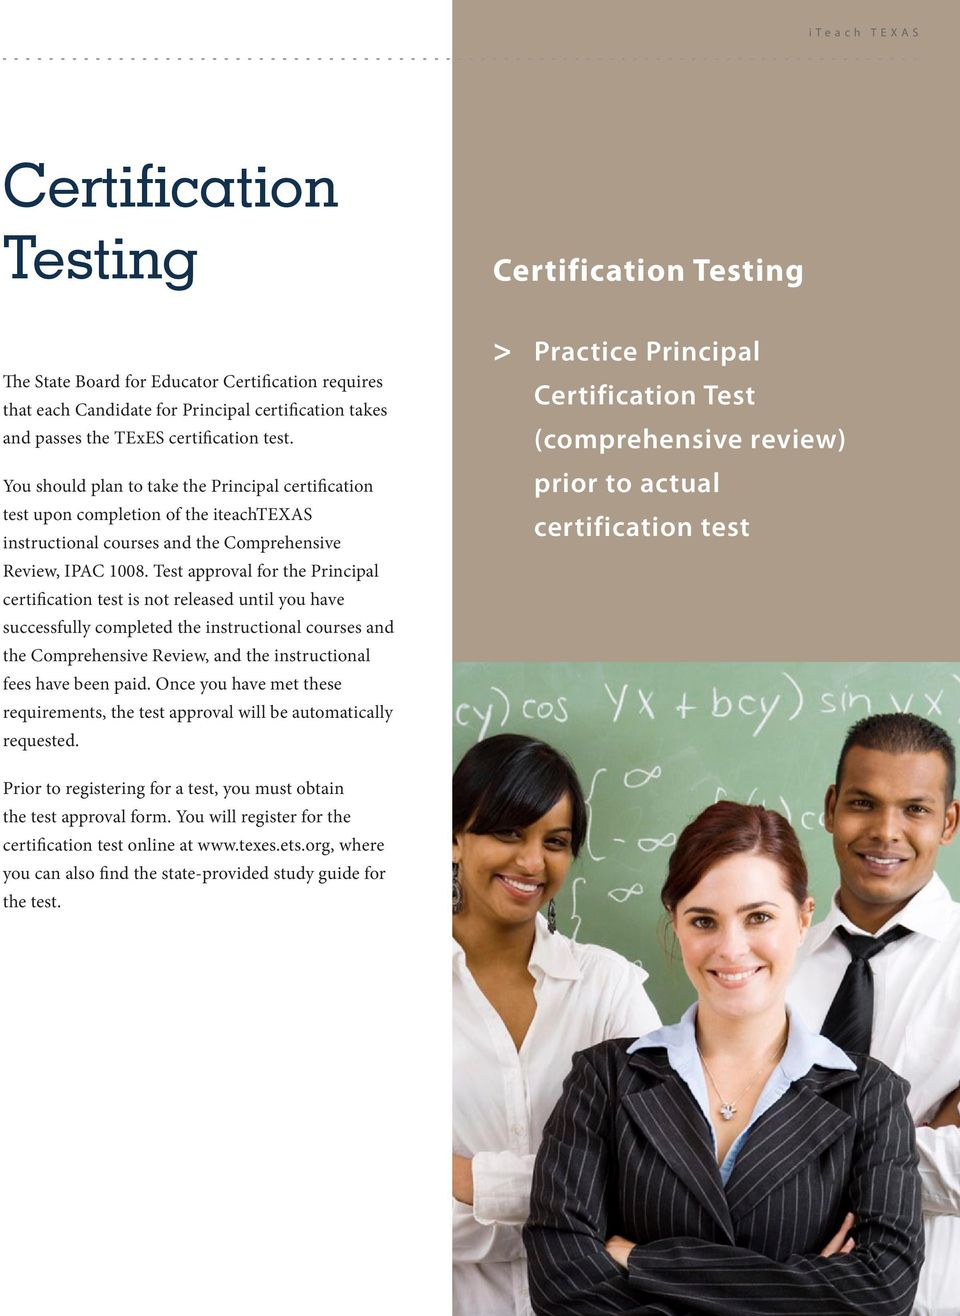 Test approval for the Principal certification test is not released until you have successfully completed the instructional courses and the Comprehensive Review, and the instructional fees have been